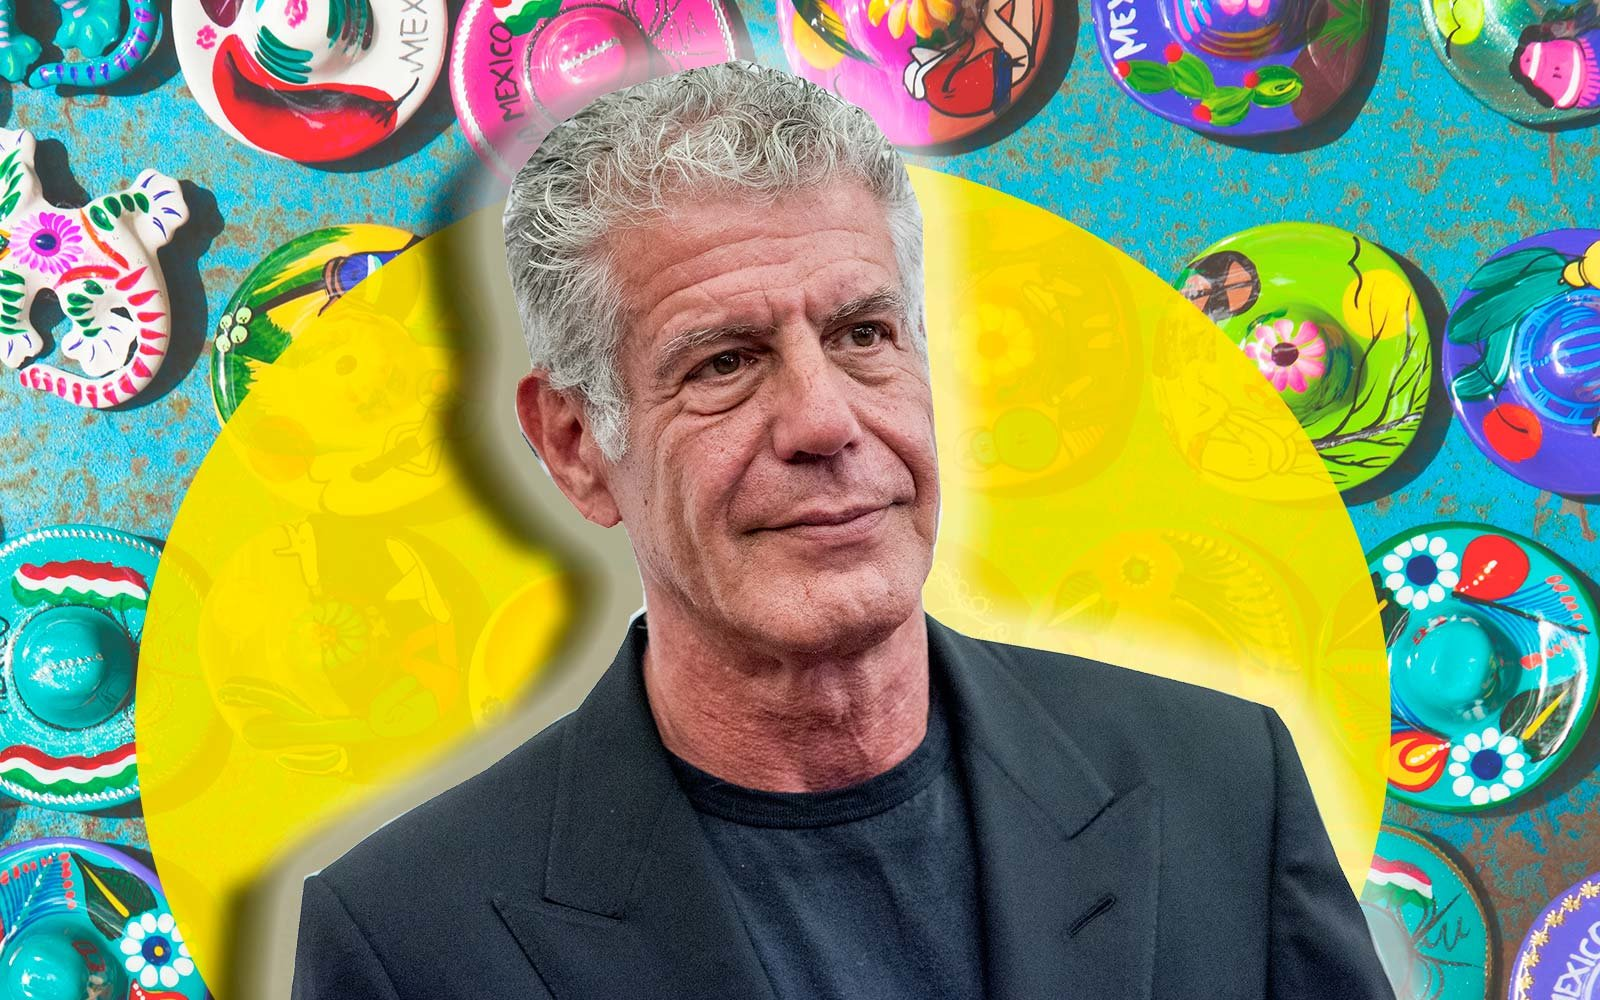 Anthony Bourdain Favorite Travel Souvenirs Gifts